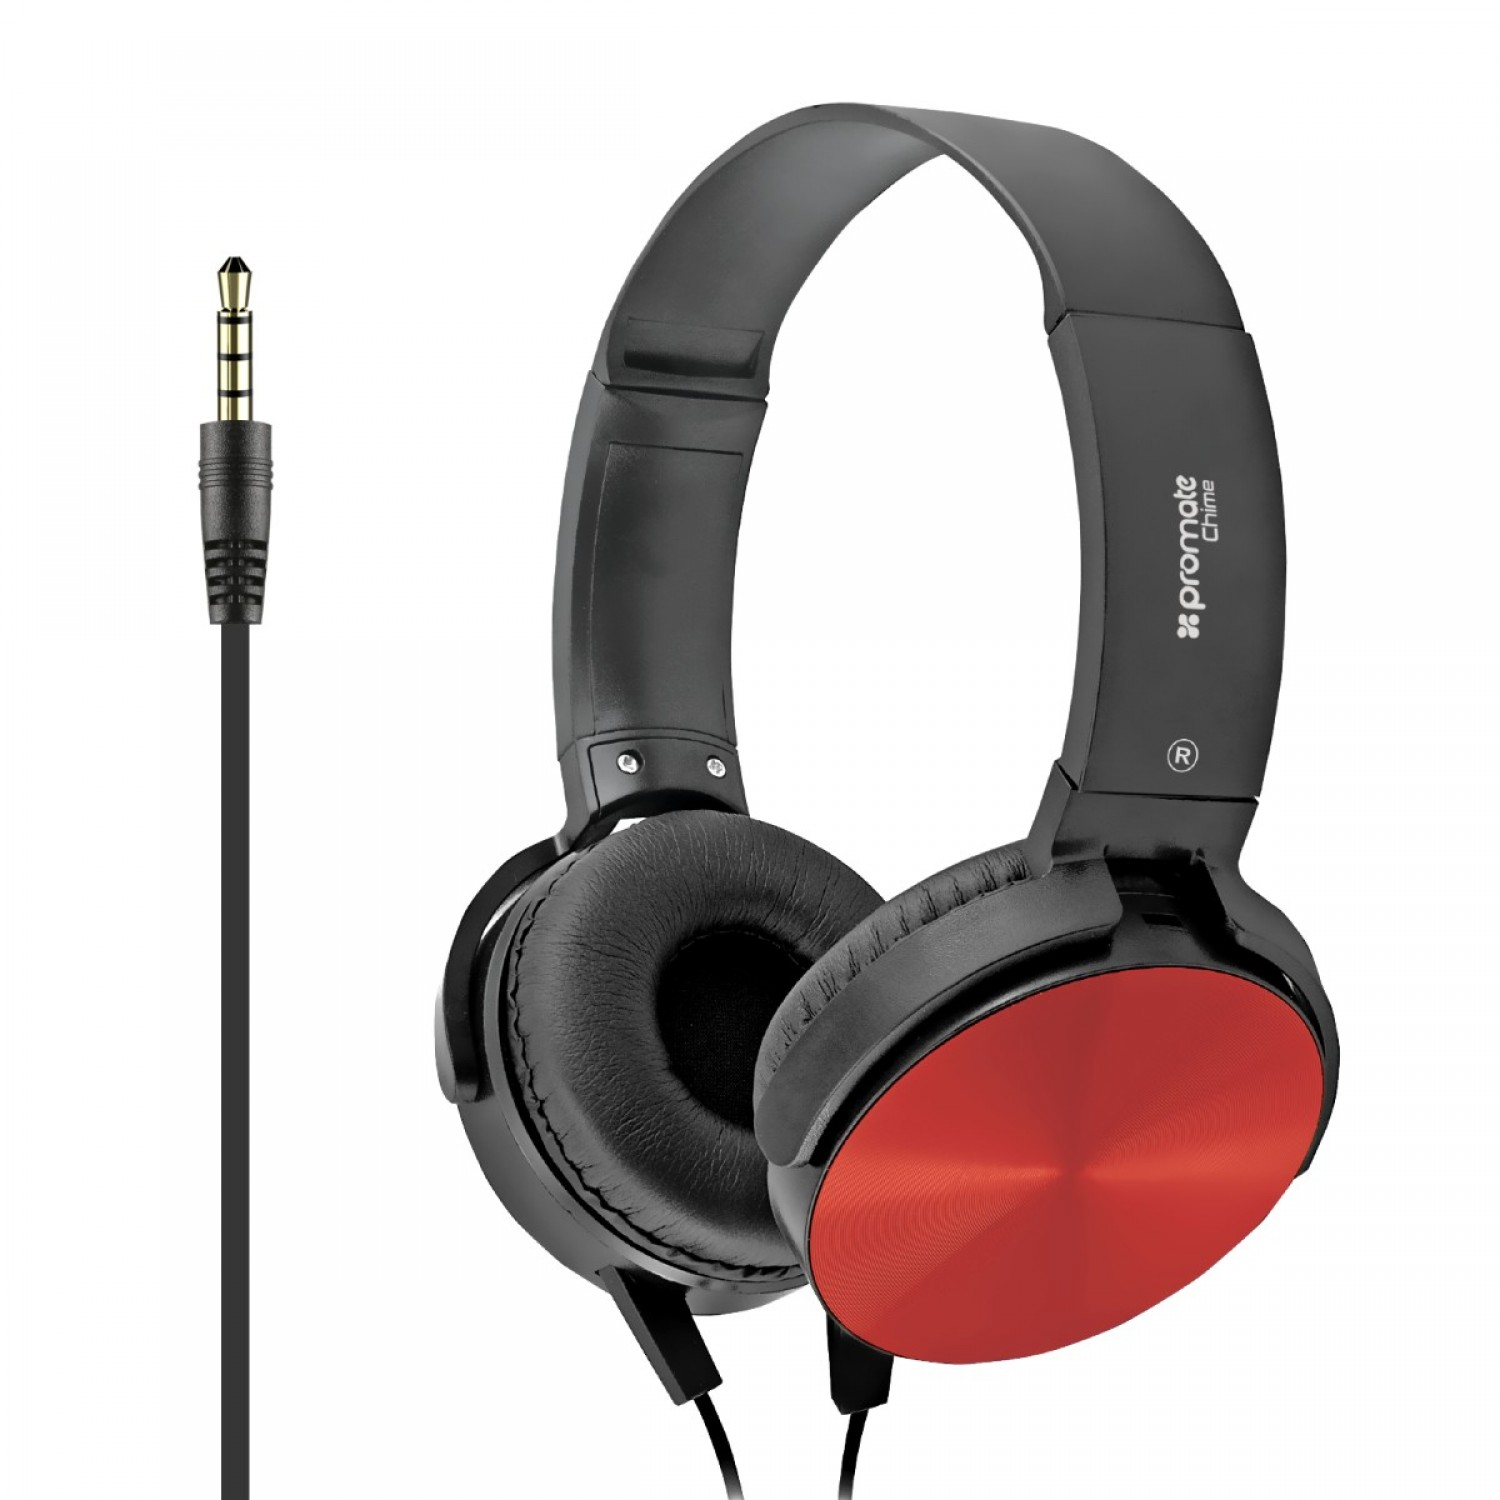 Promate Headphone, Premium Over-Ear Headset with Rotatable Ear-Cups, Built-in Microphone, HD Sound, 3.5mm Audio Jack and Anti-Tangle Wires for Smartphones, Tablets, Mp3, Laptops, Chime Red